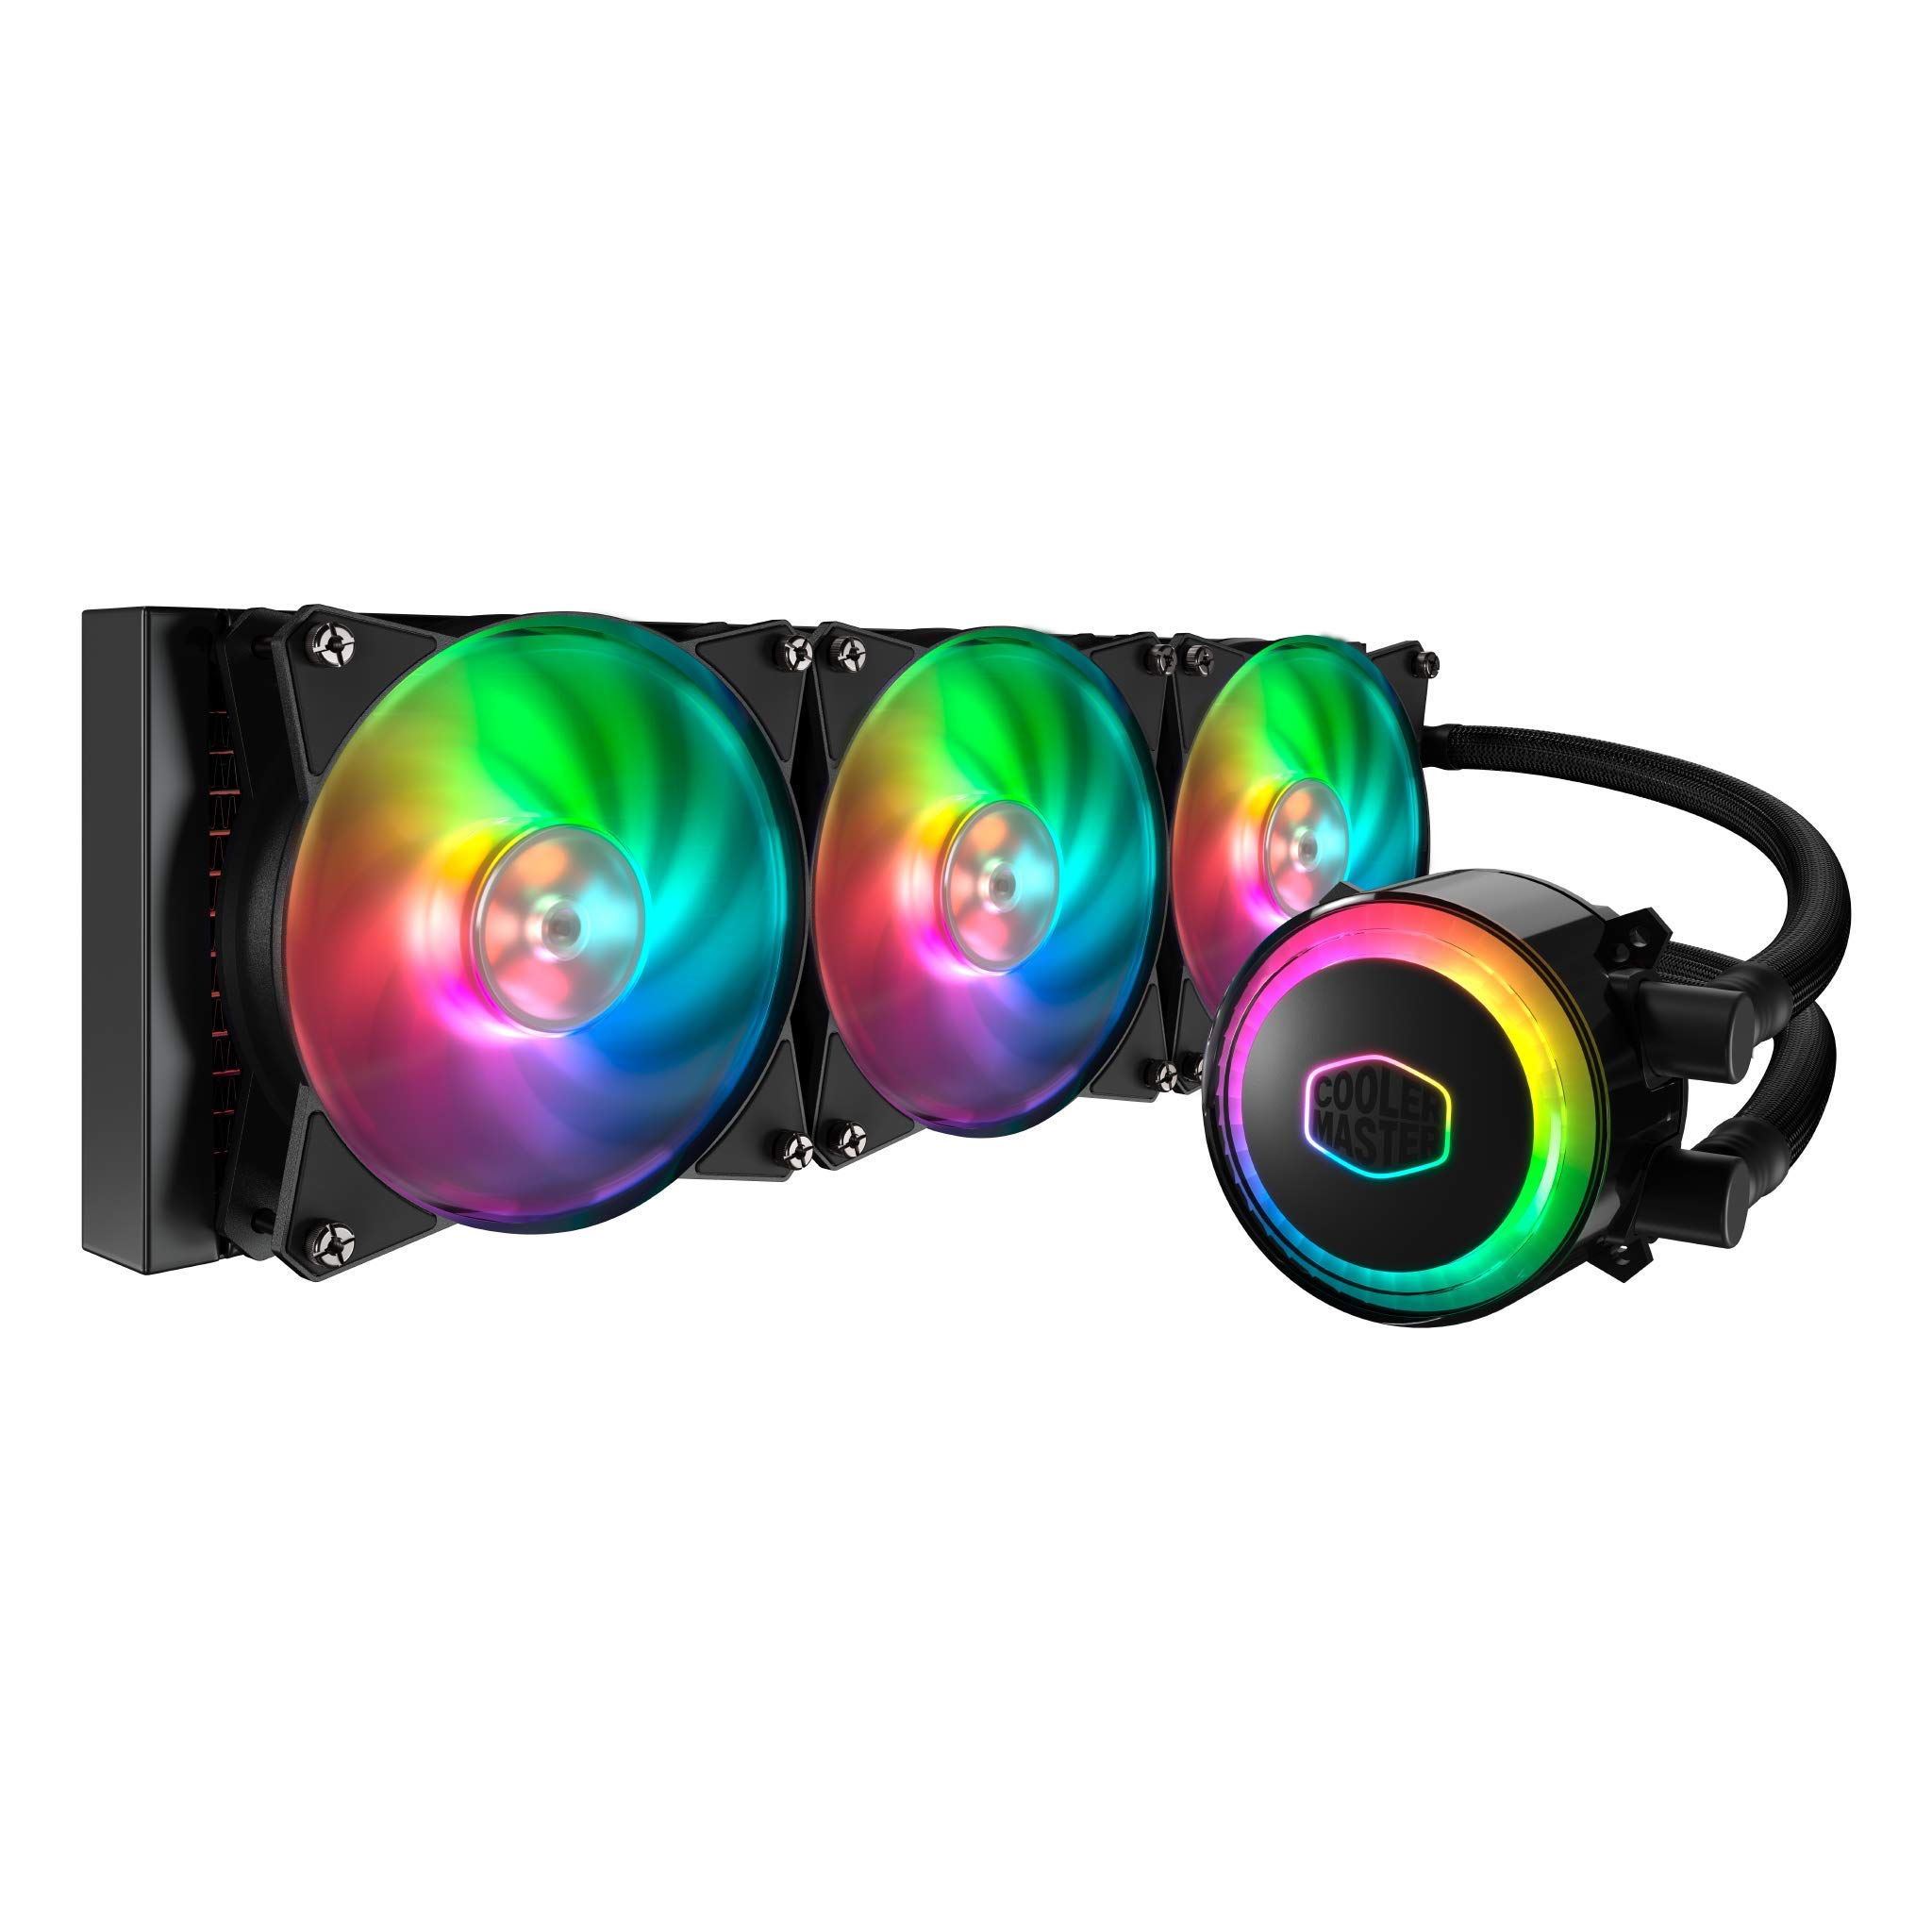 Cooler Master MLX-D36M-A20PC-R1 MasterLiquid ML360R Addressable RGB AIO CPU Liquid Cooler 28 Independently-Controlled LEDs Triple 120mm ARGB Air Balance MF by Cooler Master